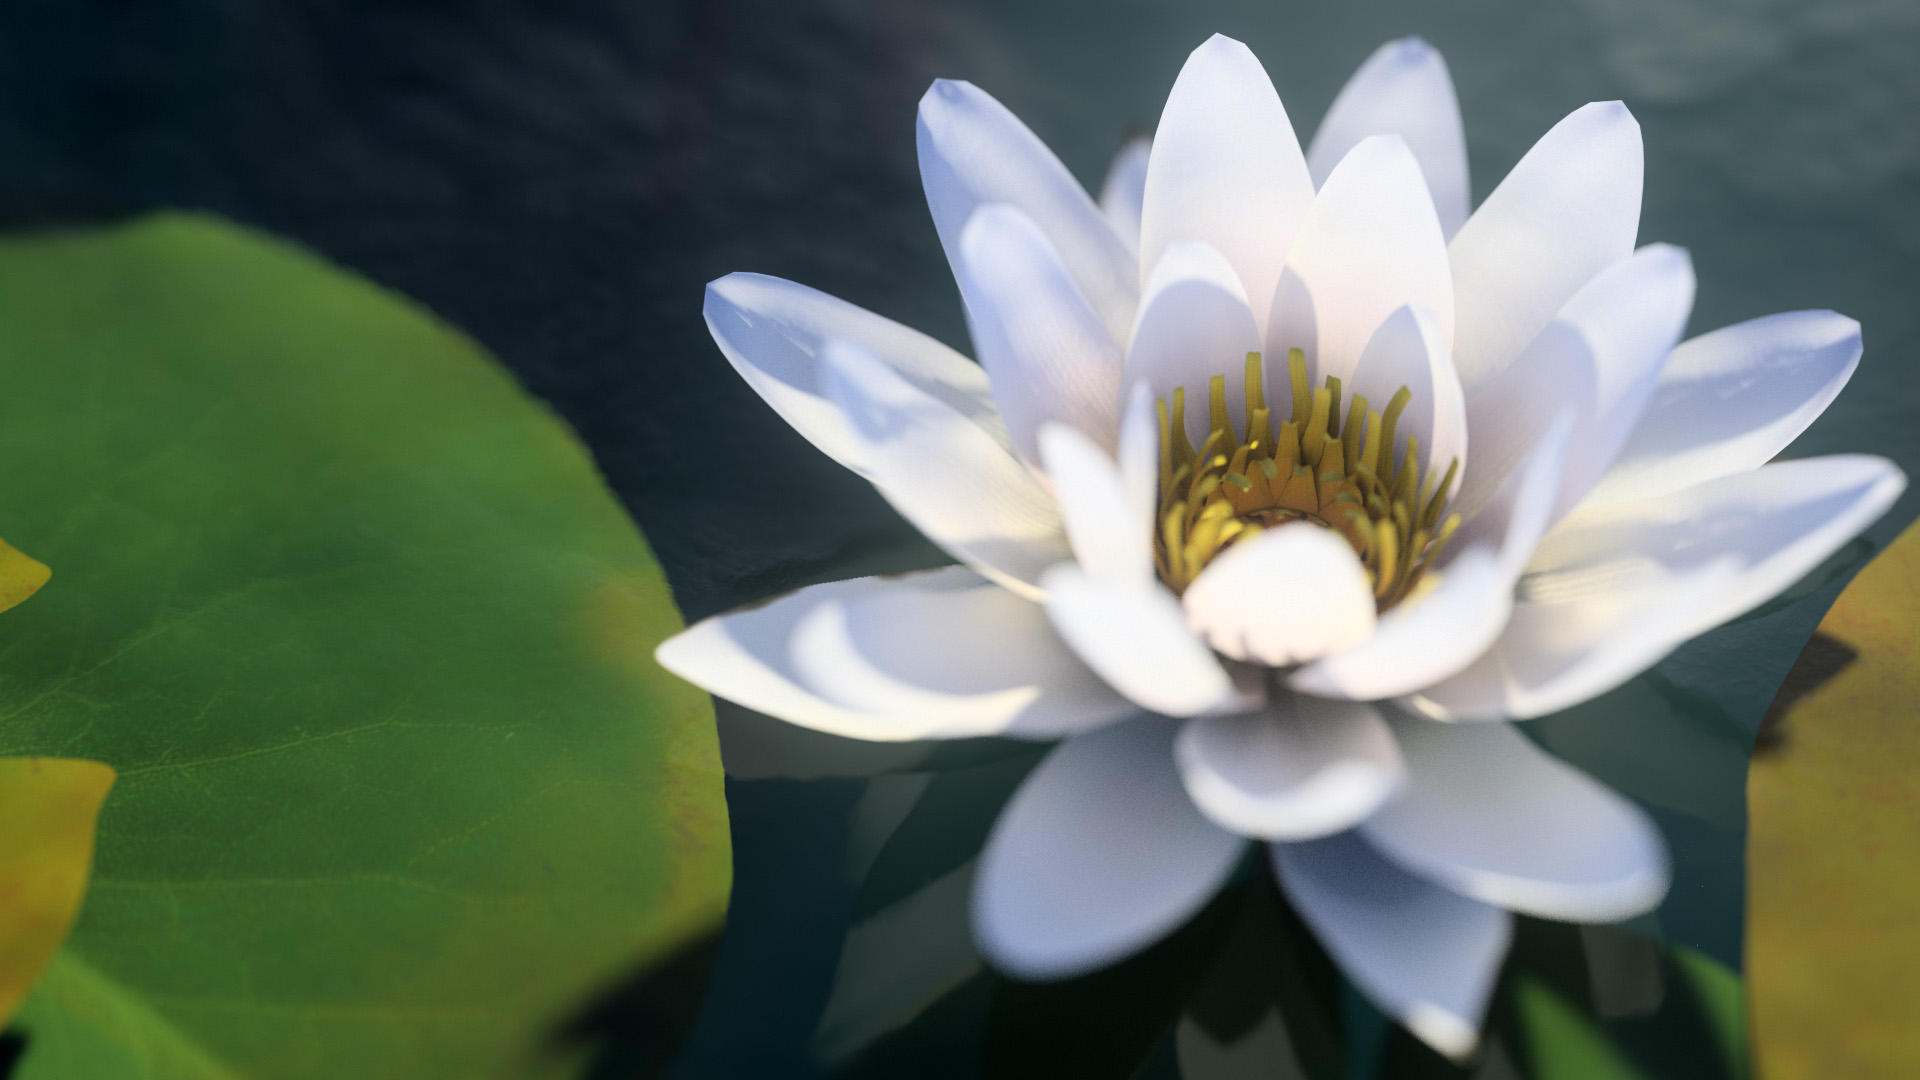 3D model of the White water lily Nymphaea alba close-up